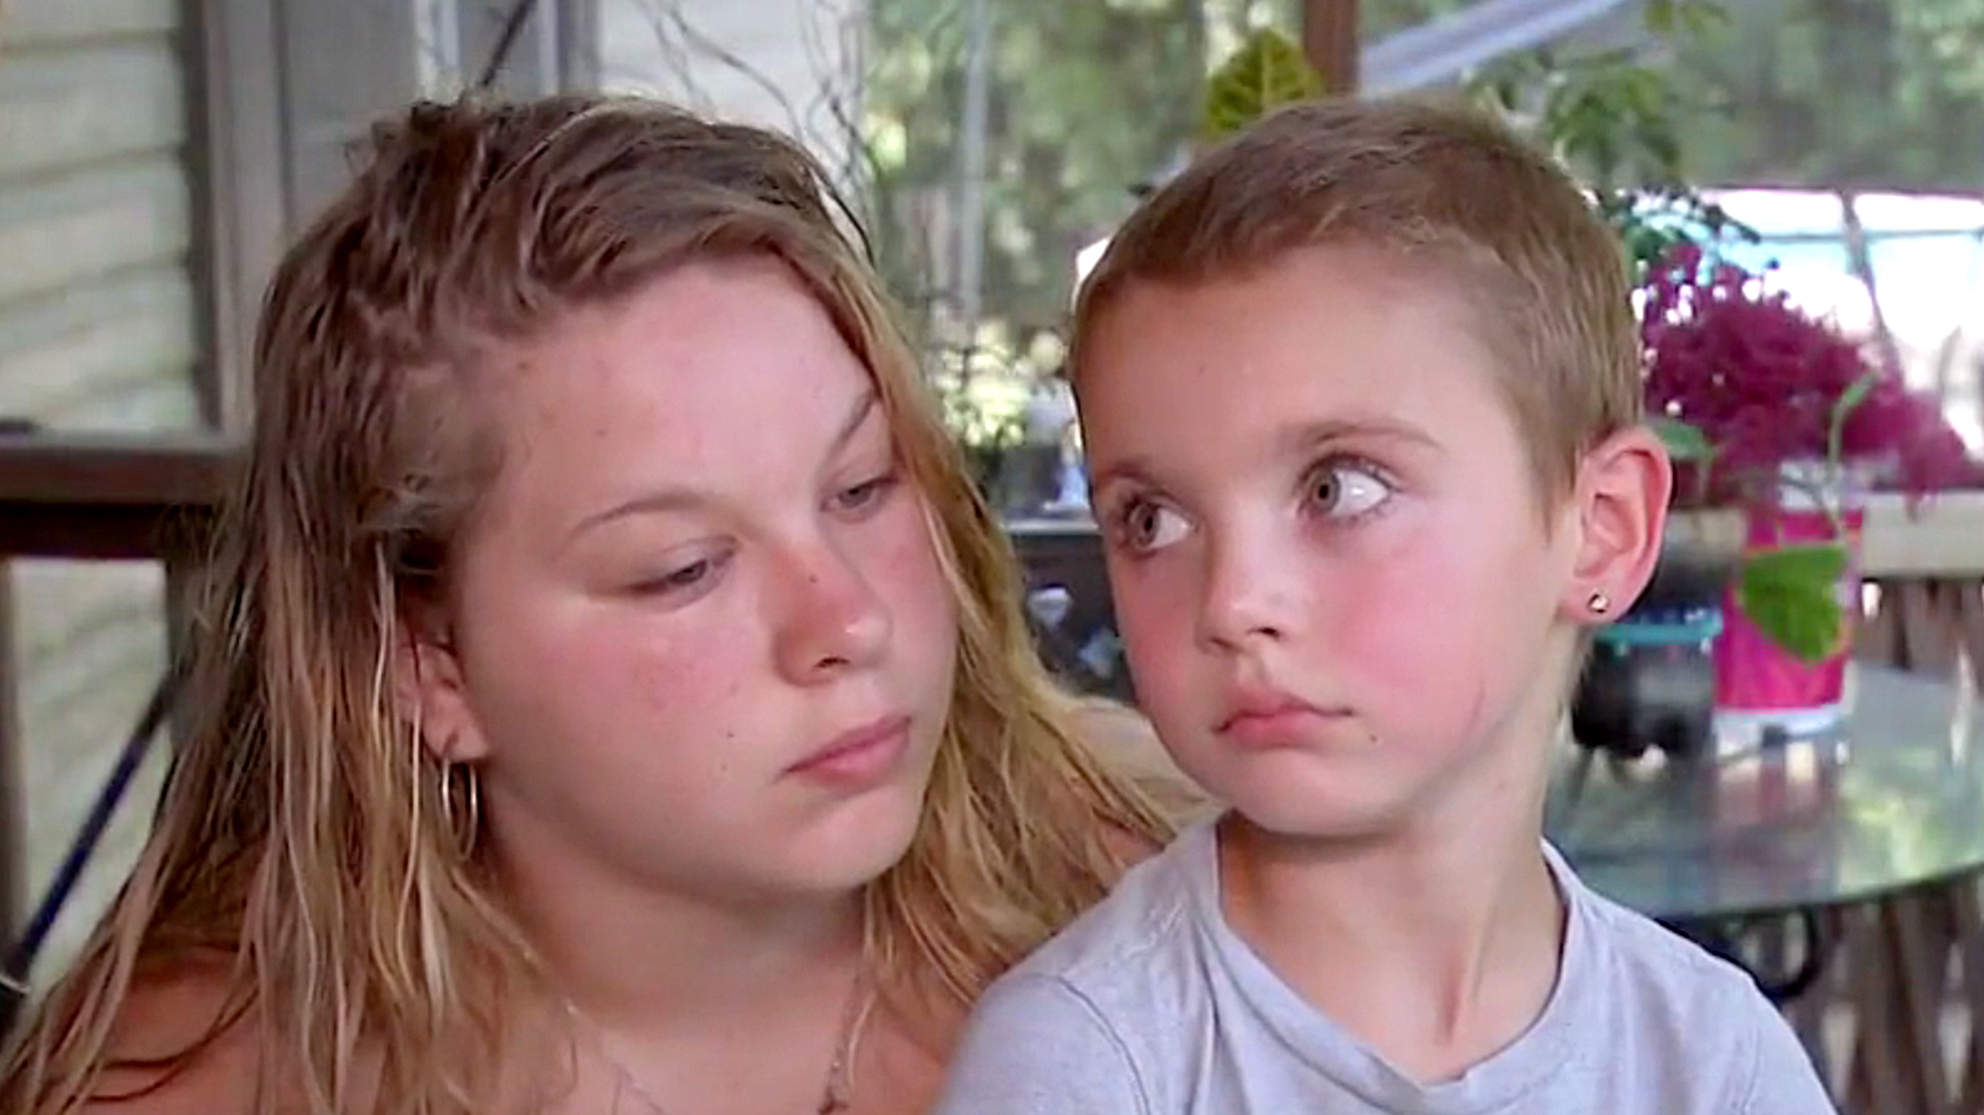 Boy, 7, Saves His 20-Year-Old Sister from Drowning in Pool After She Had a Seizure and Fell in